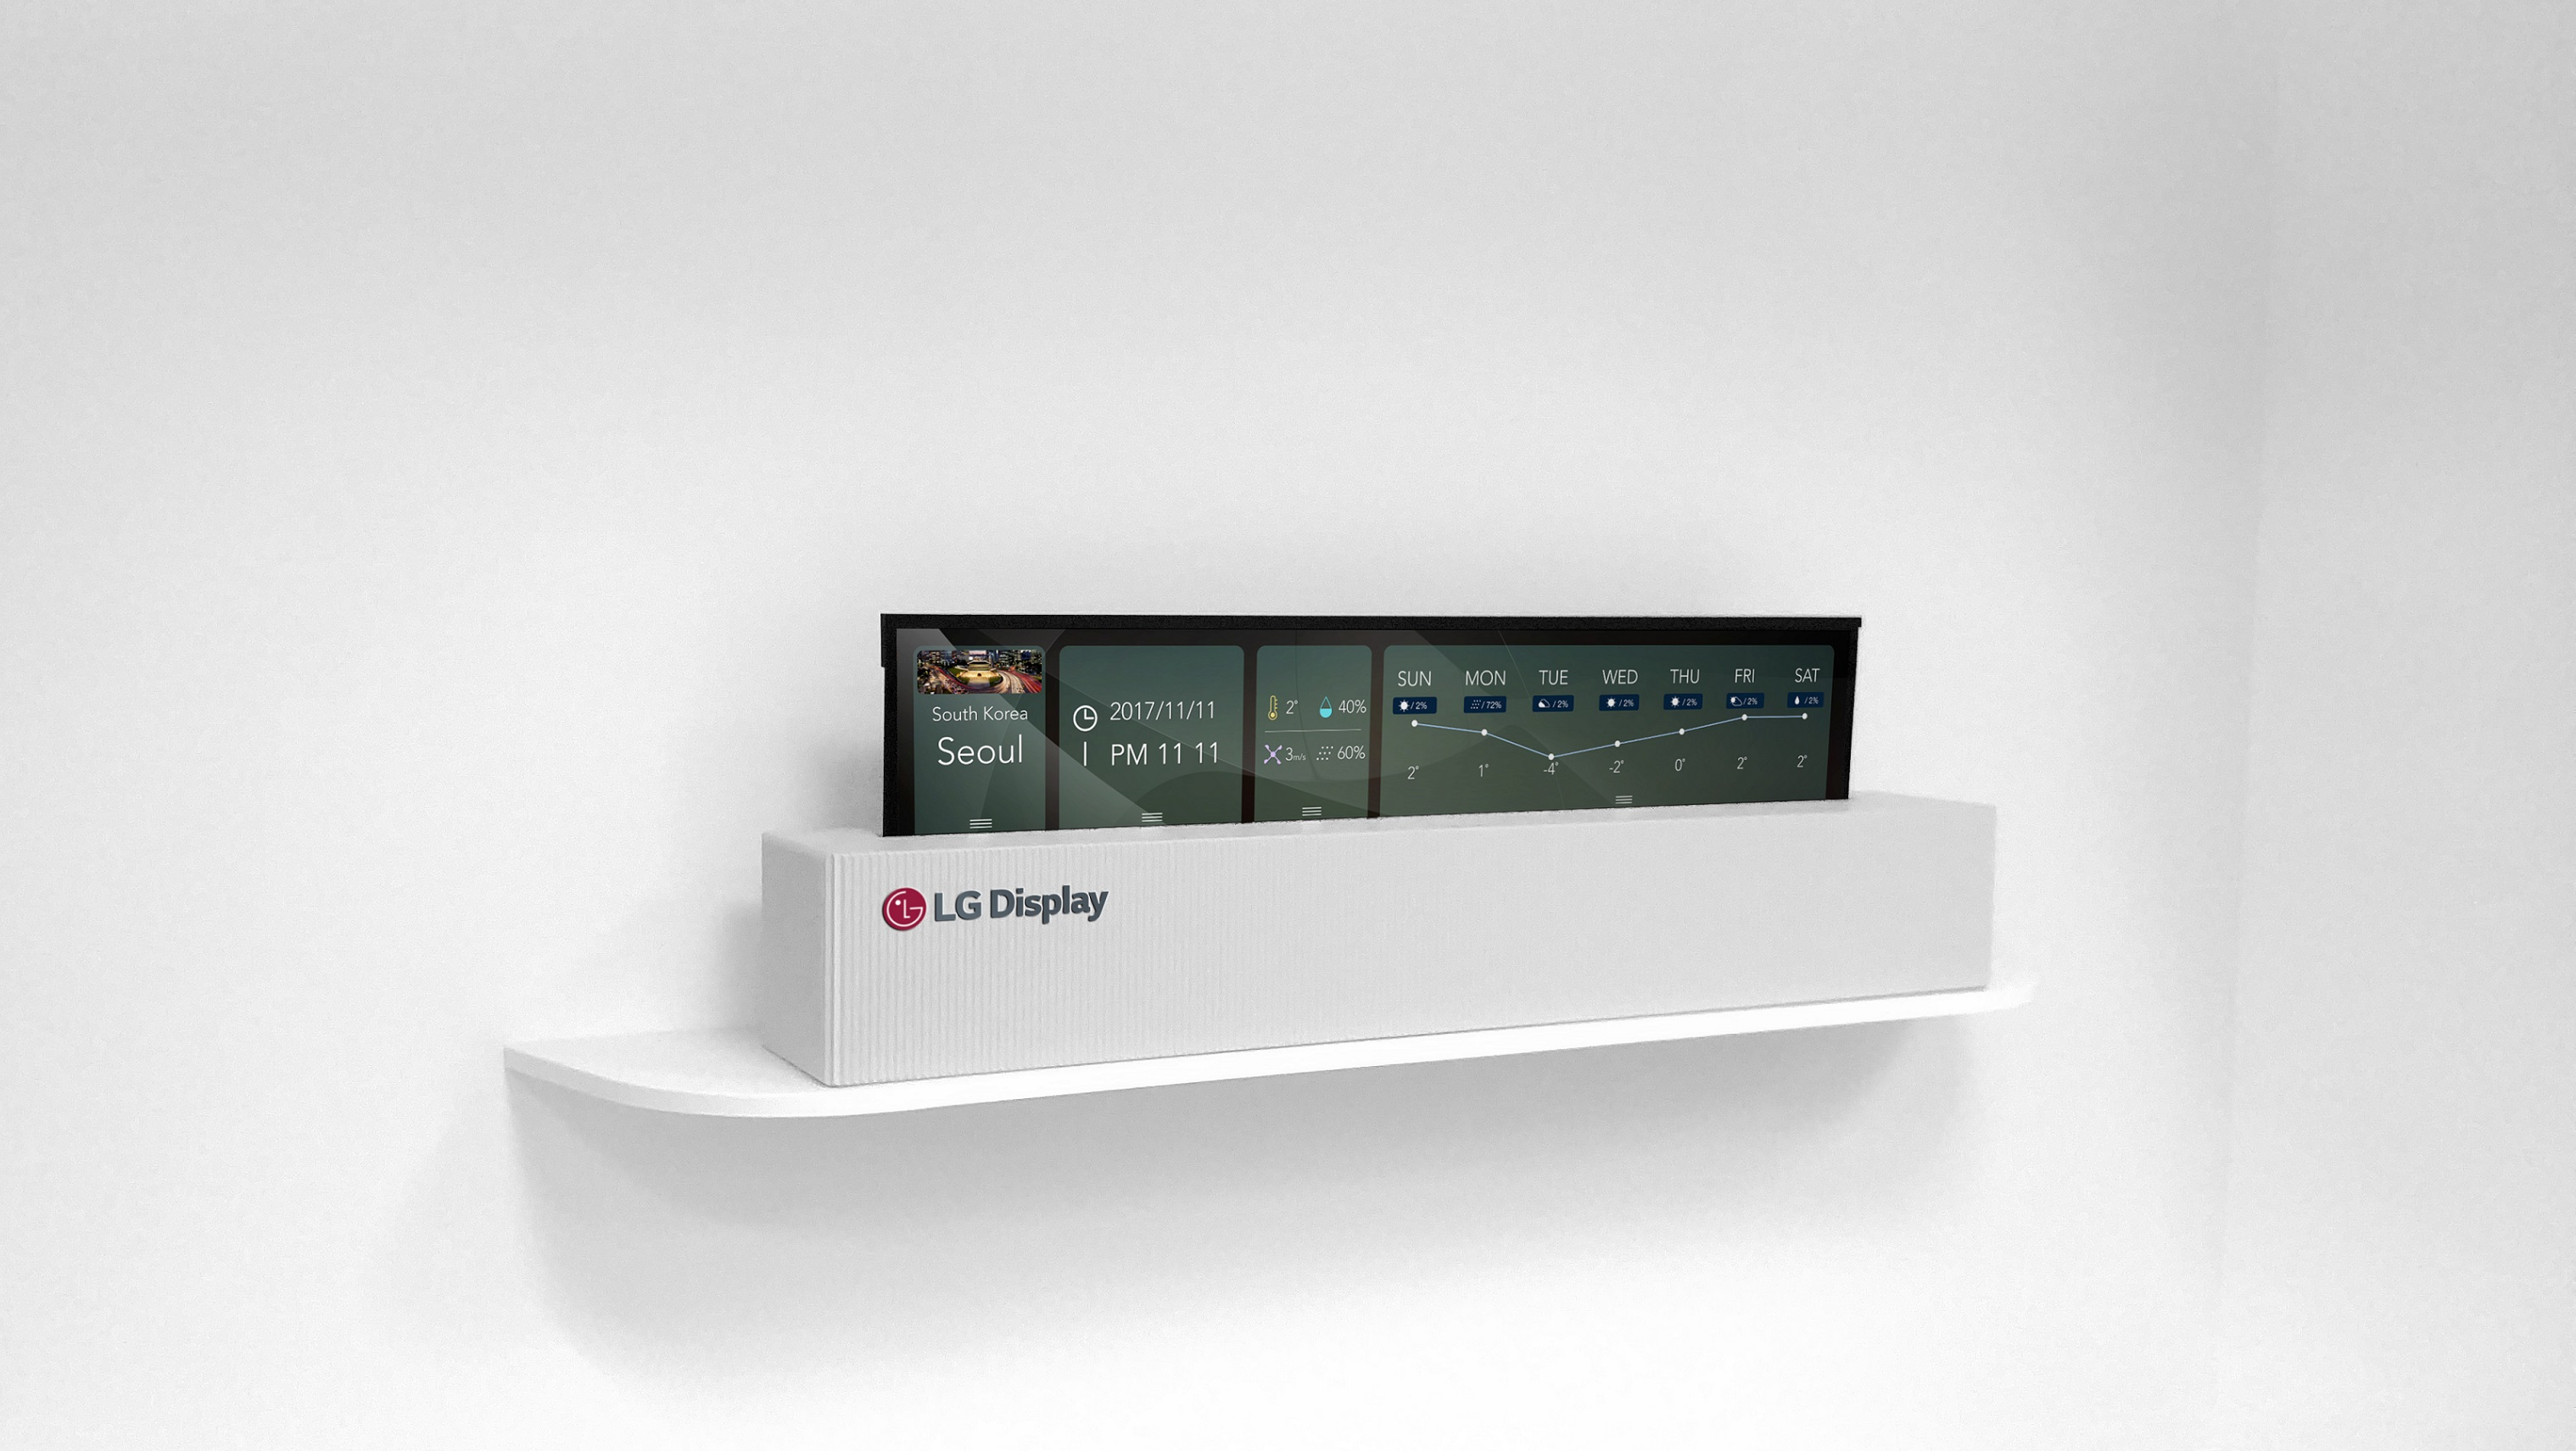 LGD_65_inch_UHD_rollable_OLED_display_2